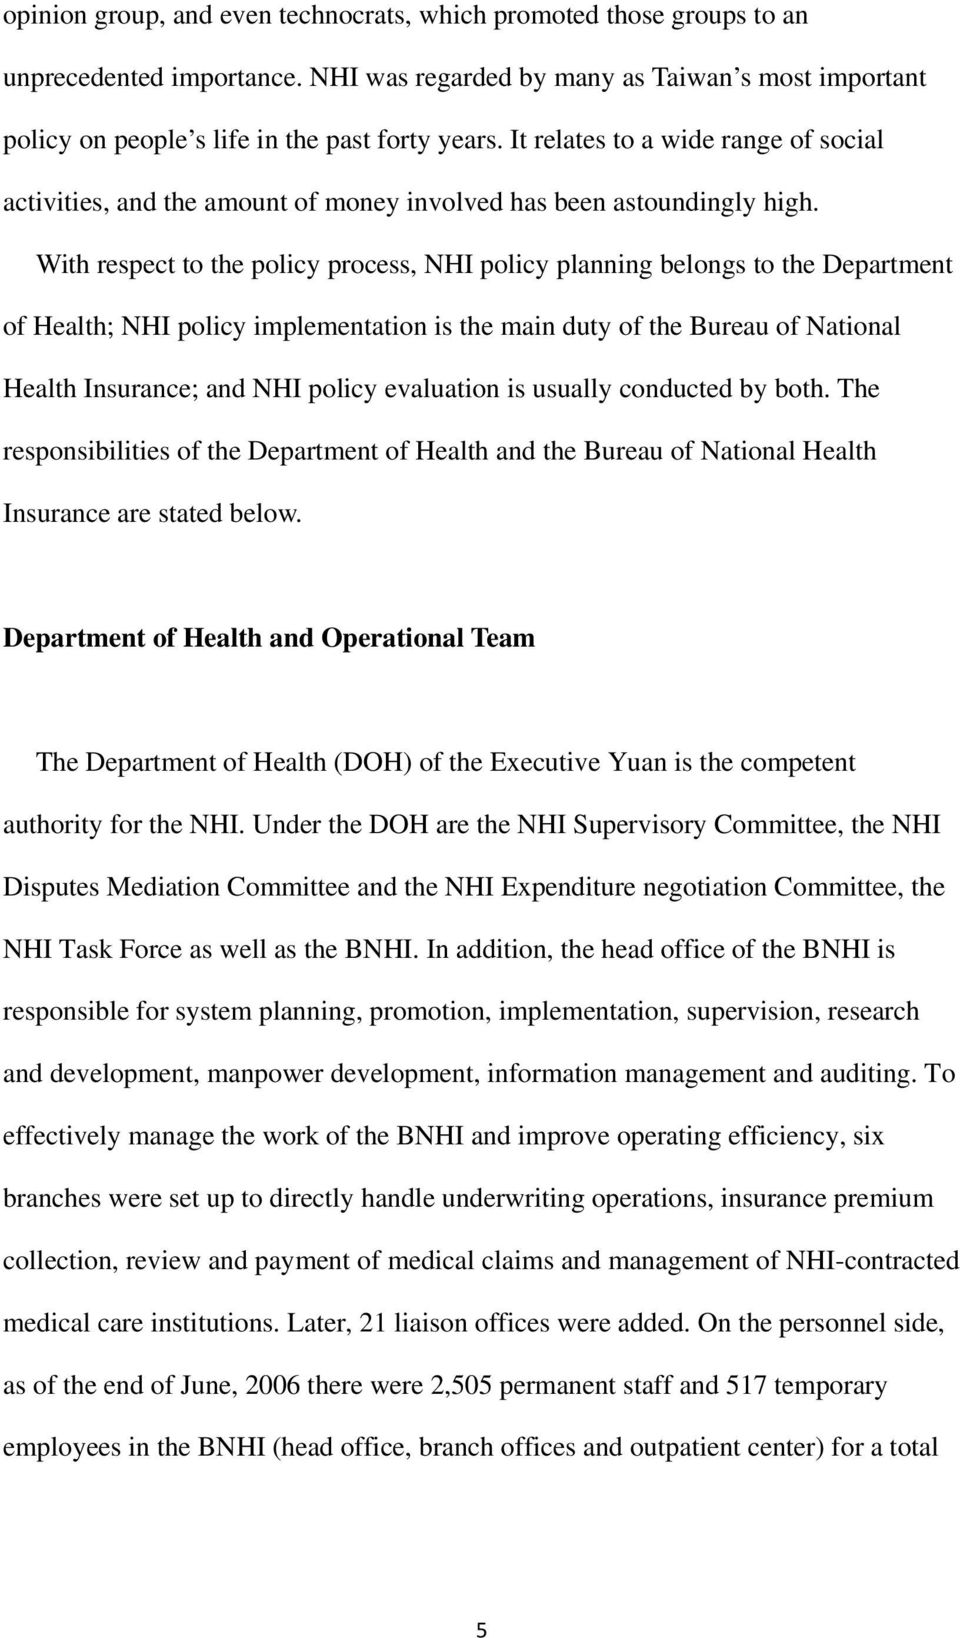 With respect to the policy process, NHI policy planning belongs to the Department of Health; NHI policy implementation is the main duty of the Bureau of National Health Insurance; and NHI policy